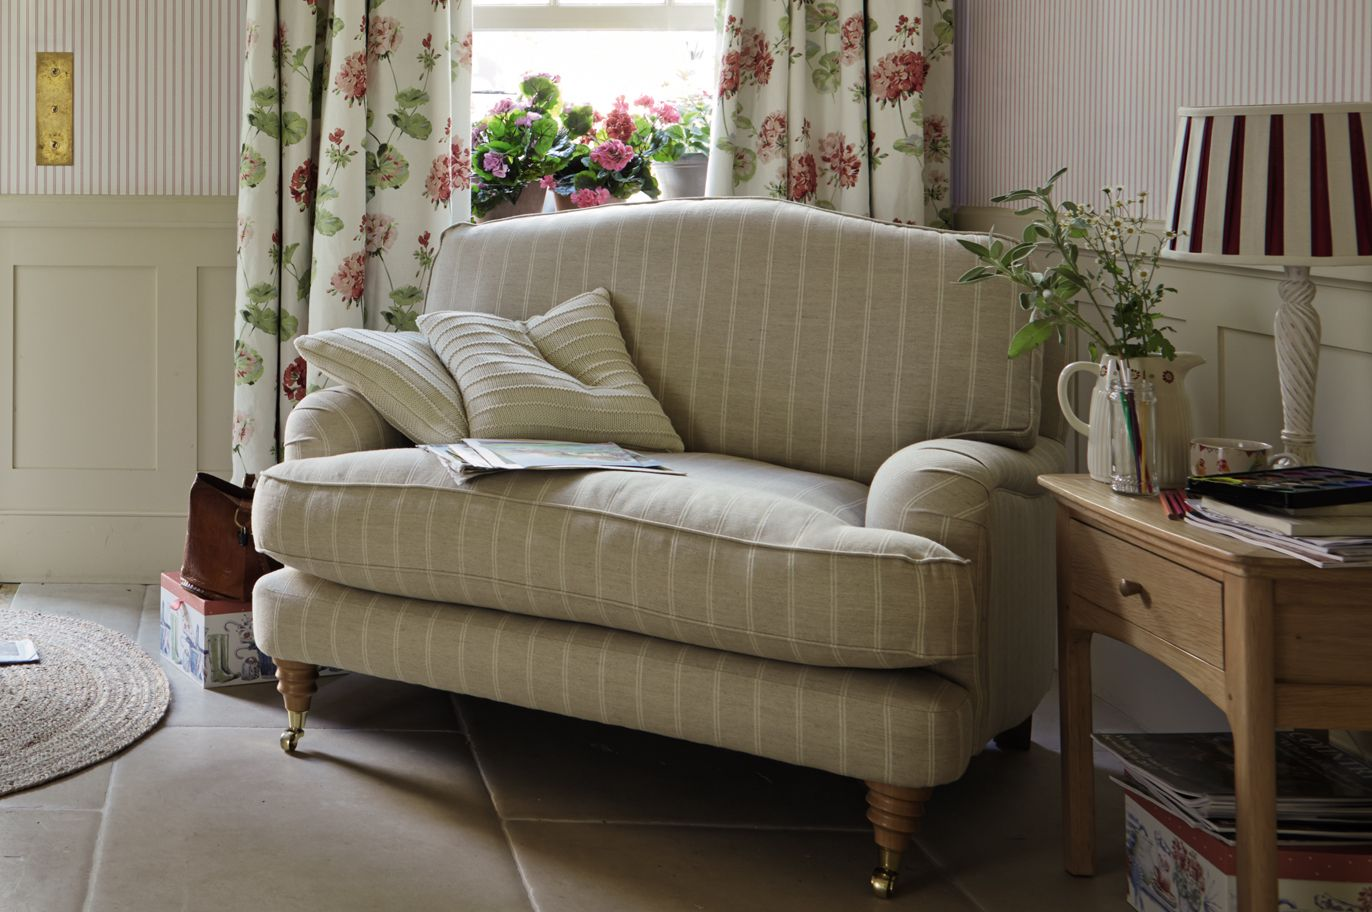 Sofas Laura Ashley Furniture Corner Sofa Small Living Room Lynden Upholstered Snuggler Made To Order